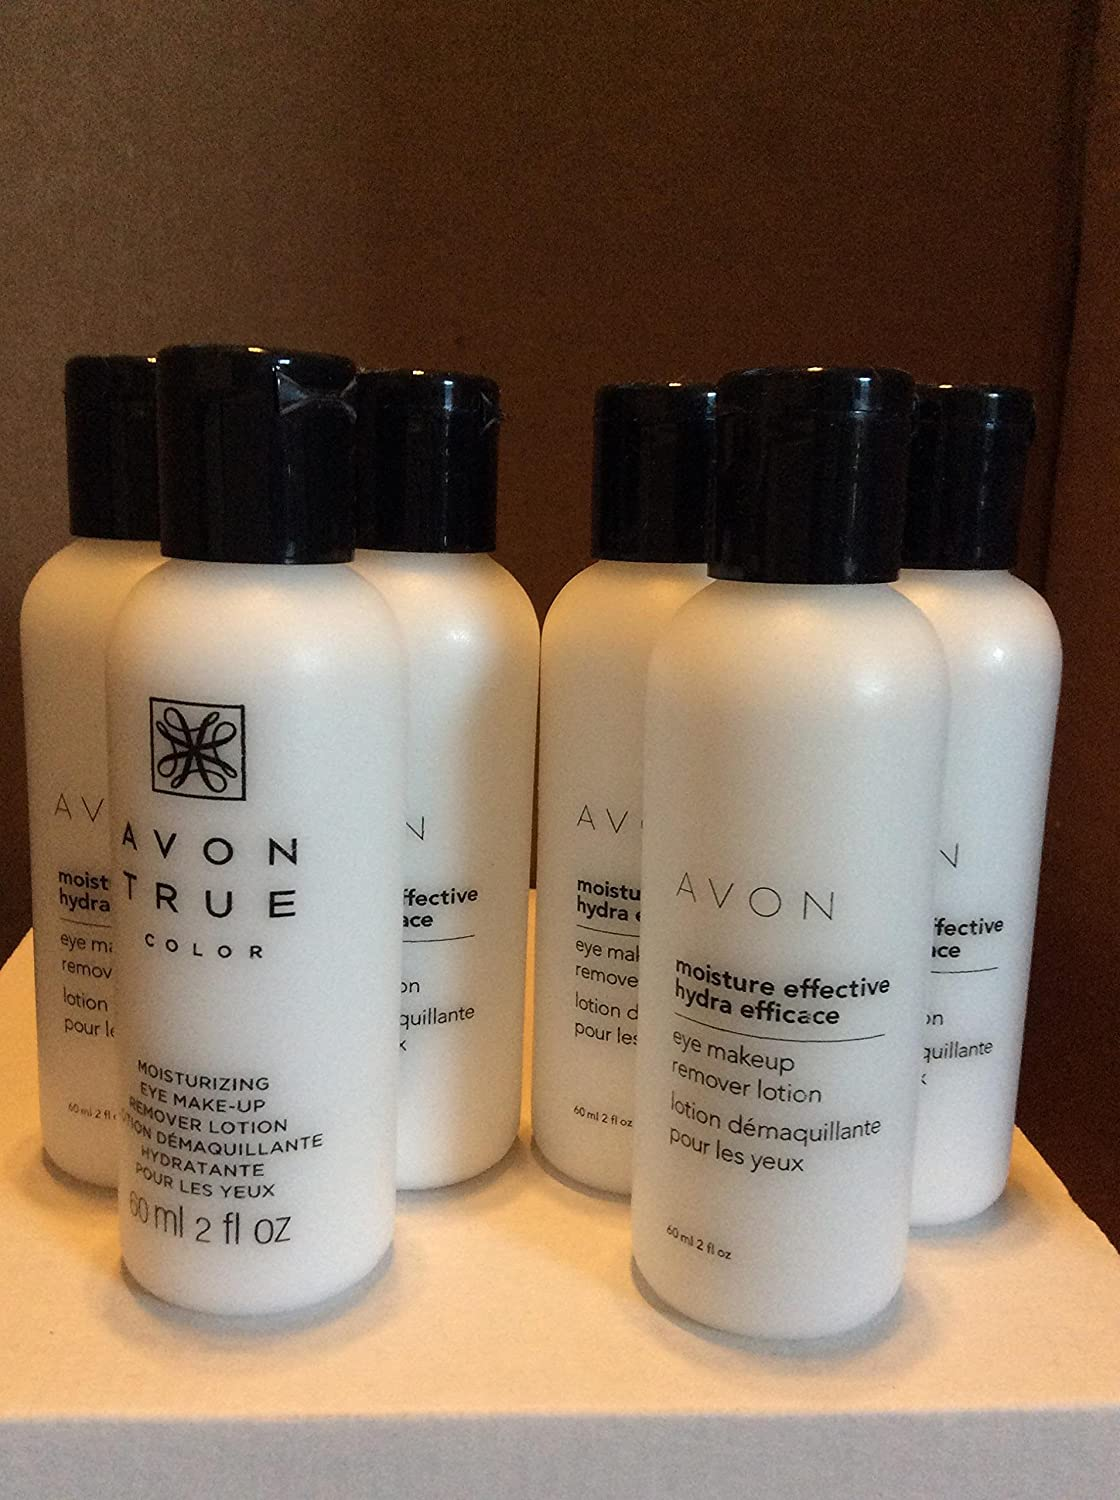 Amazon Moisture Effective Eye Makeup Remover Lotion Lot Of 6